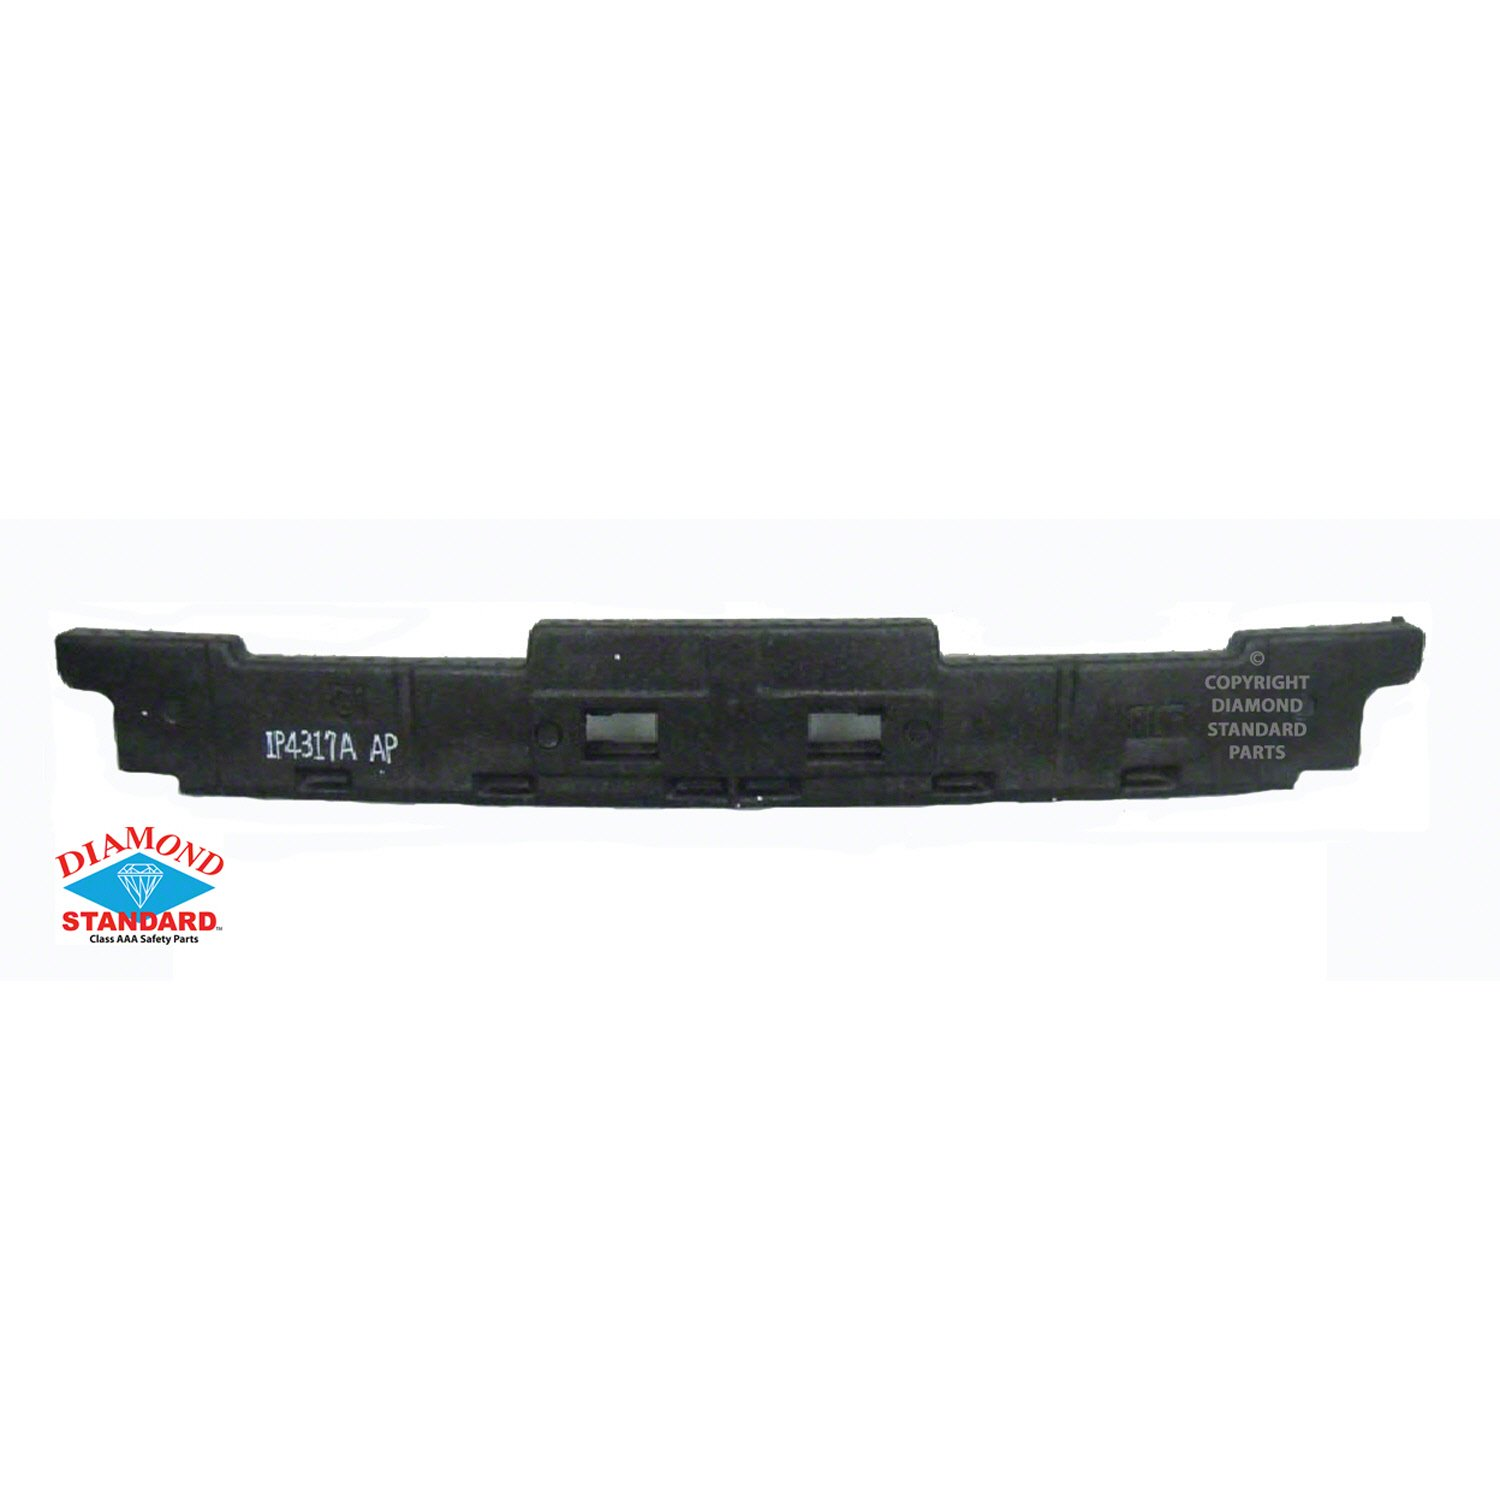 NEW REAR BUMPER ABSORBER FITS 2009-2010 TOYOTA COROLLA TO1170129